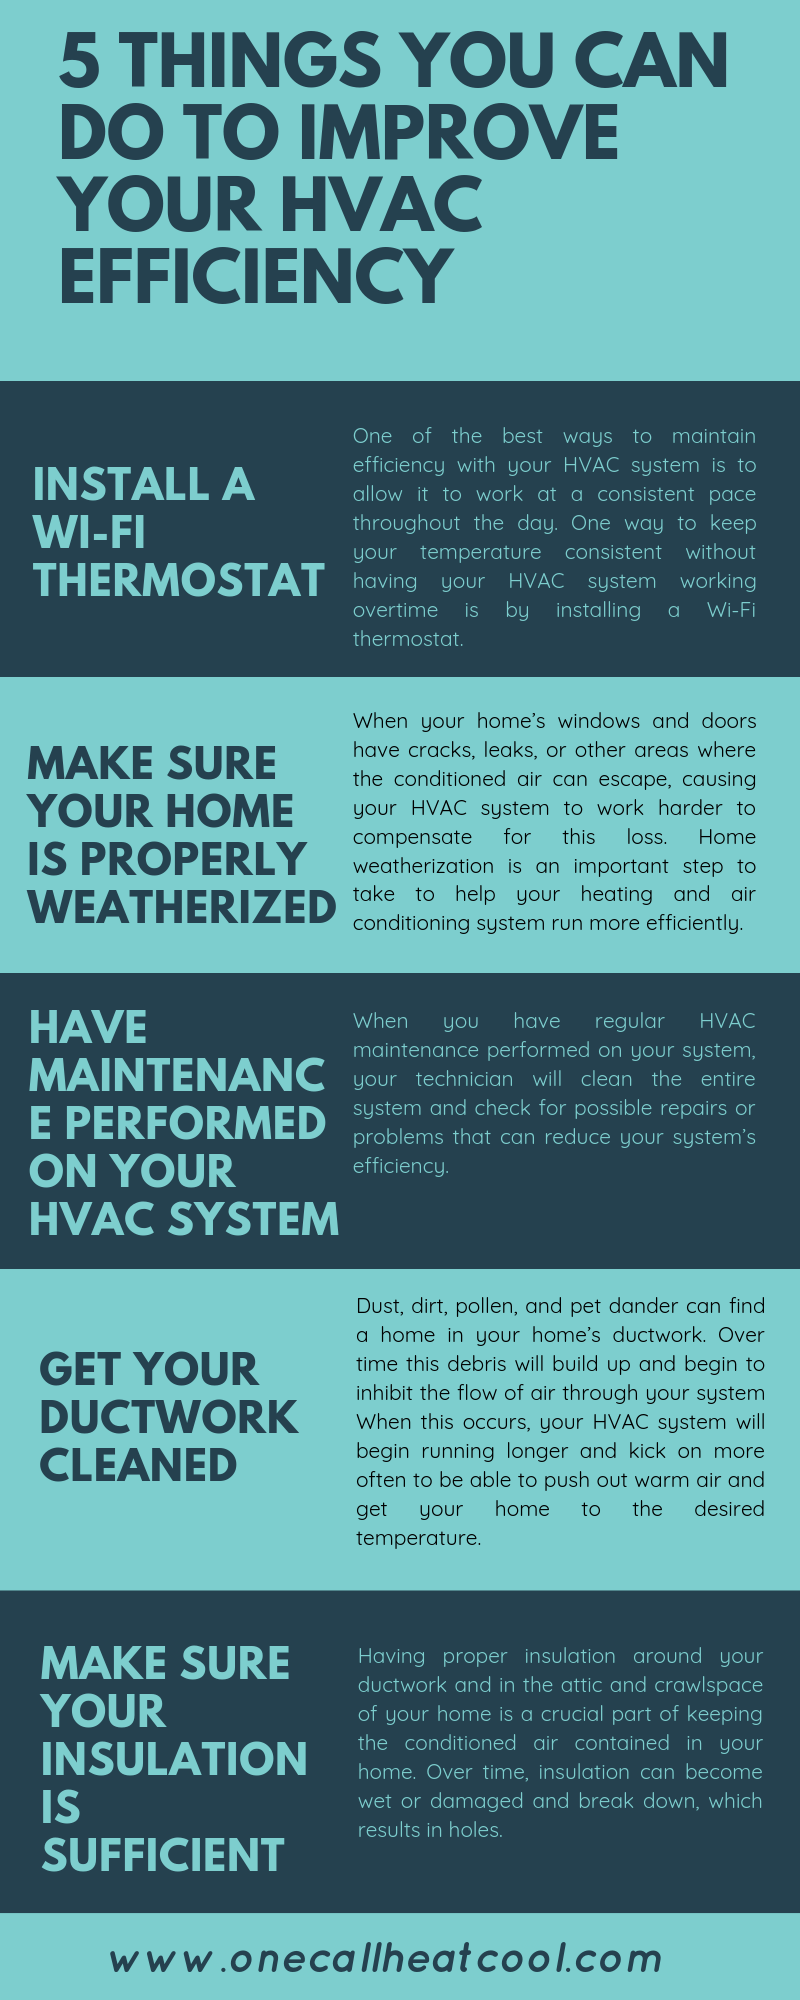 Pin By One Call Heating And Cooling On Hvac Hvac Efficiency Improve Yourself Improve